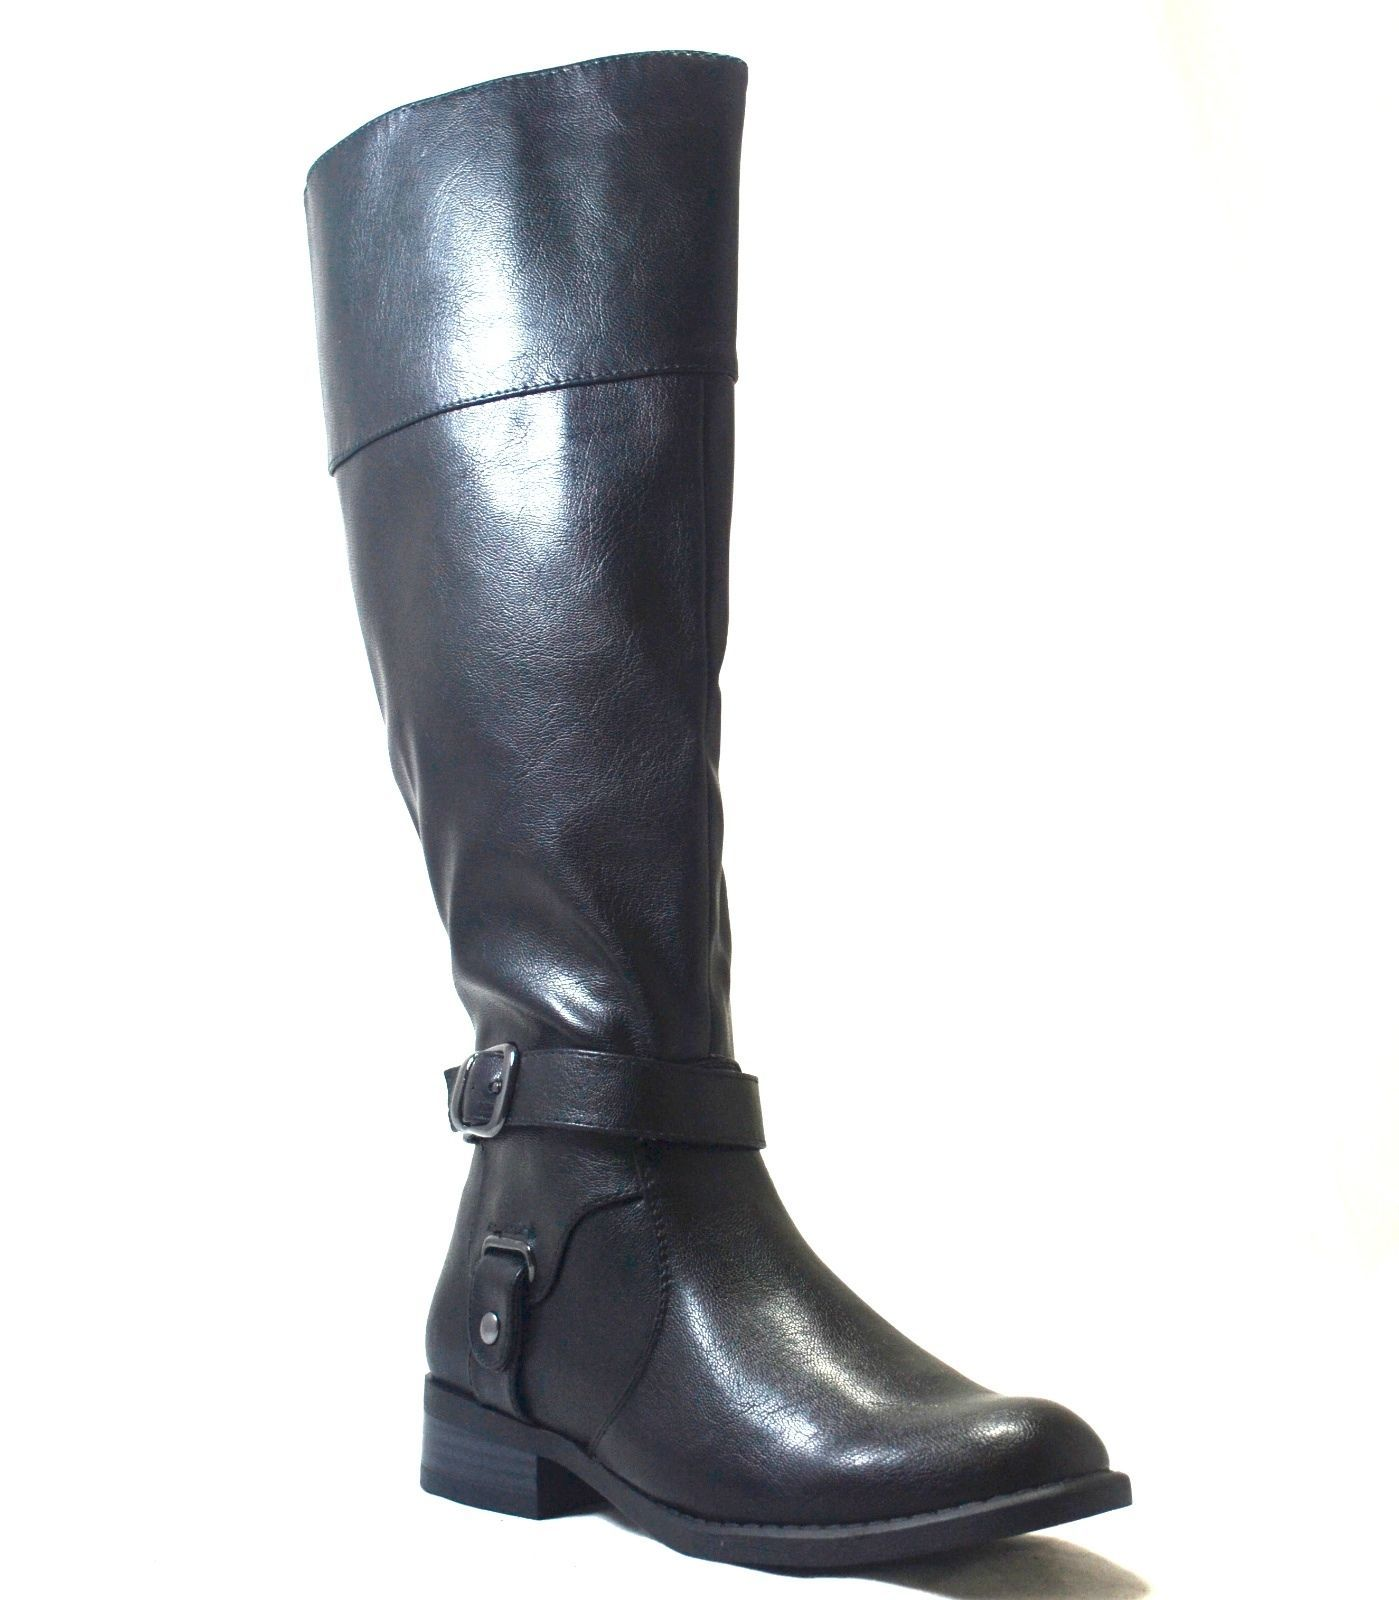 Nine West Leowm Womens Fashion Knee High Black Tall Riding Boot Boots